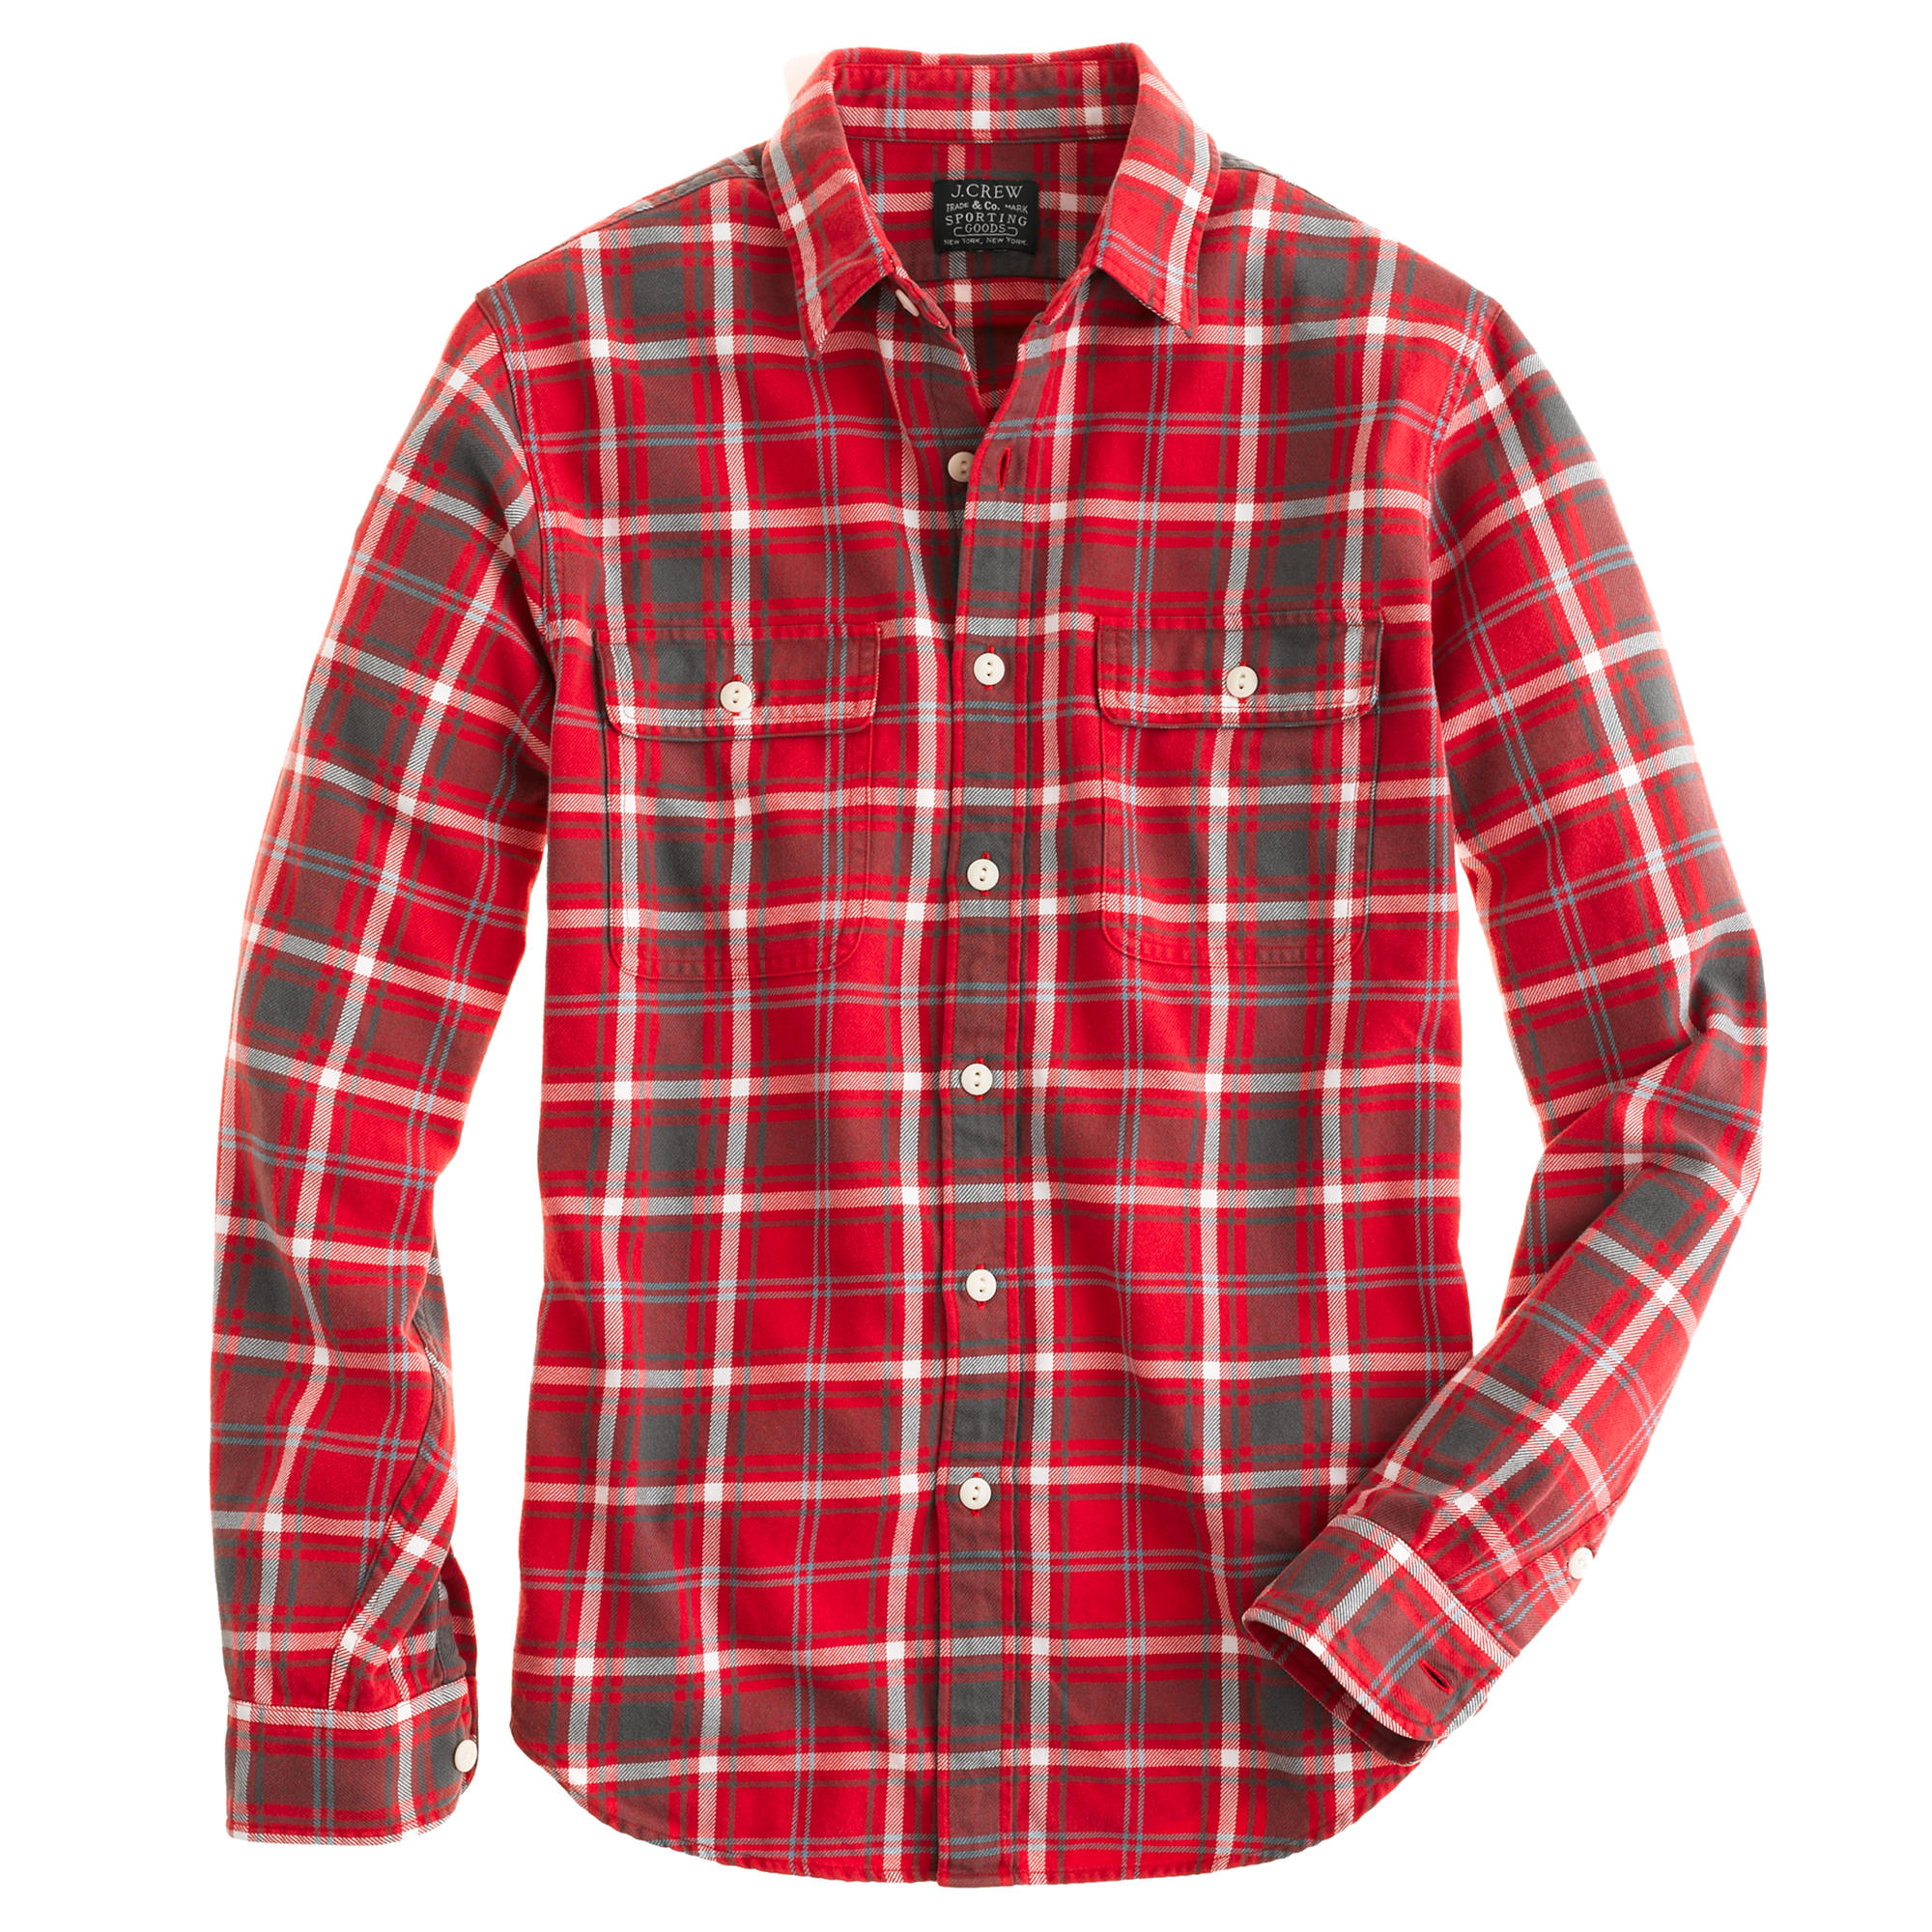 Flannel shirt in rusted red plaid j crew for How to wash flannel shirts